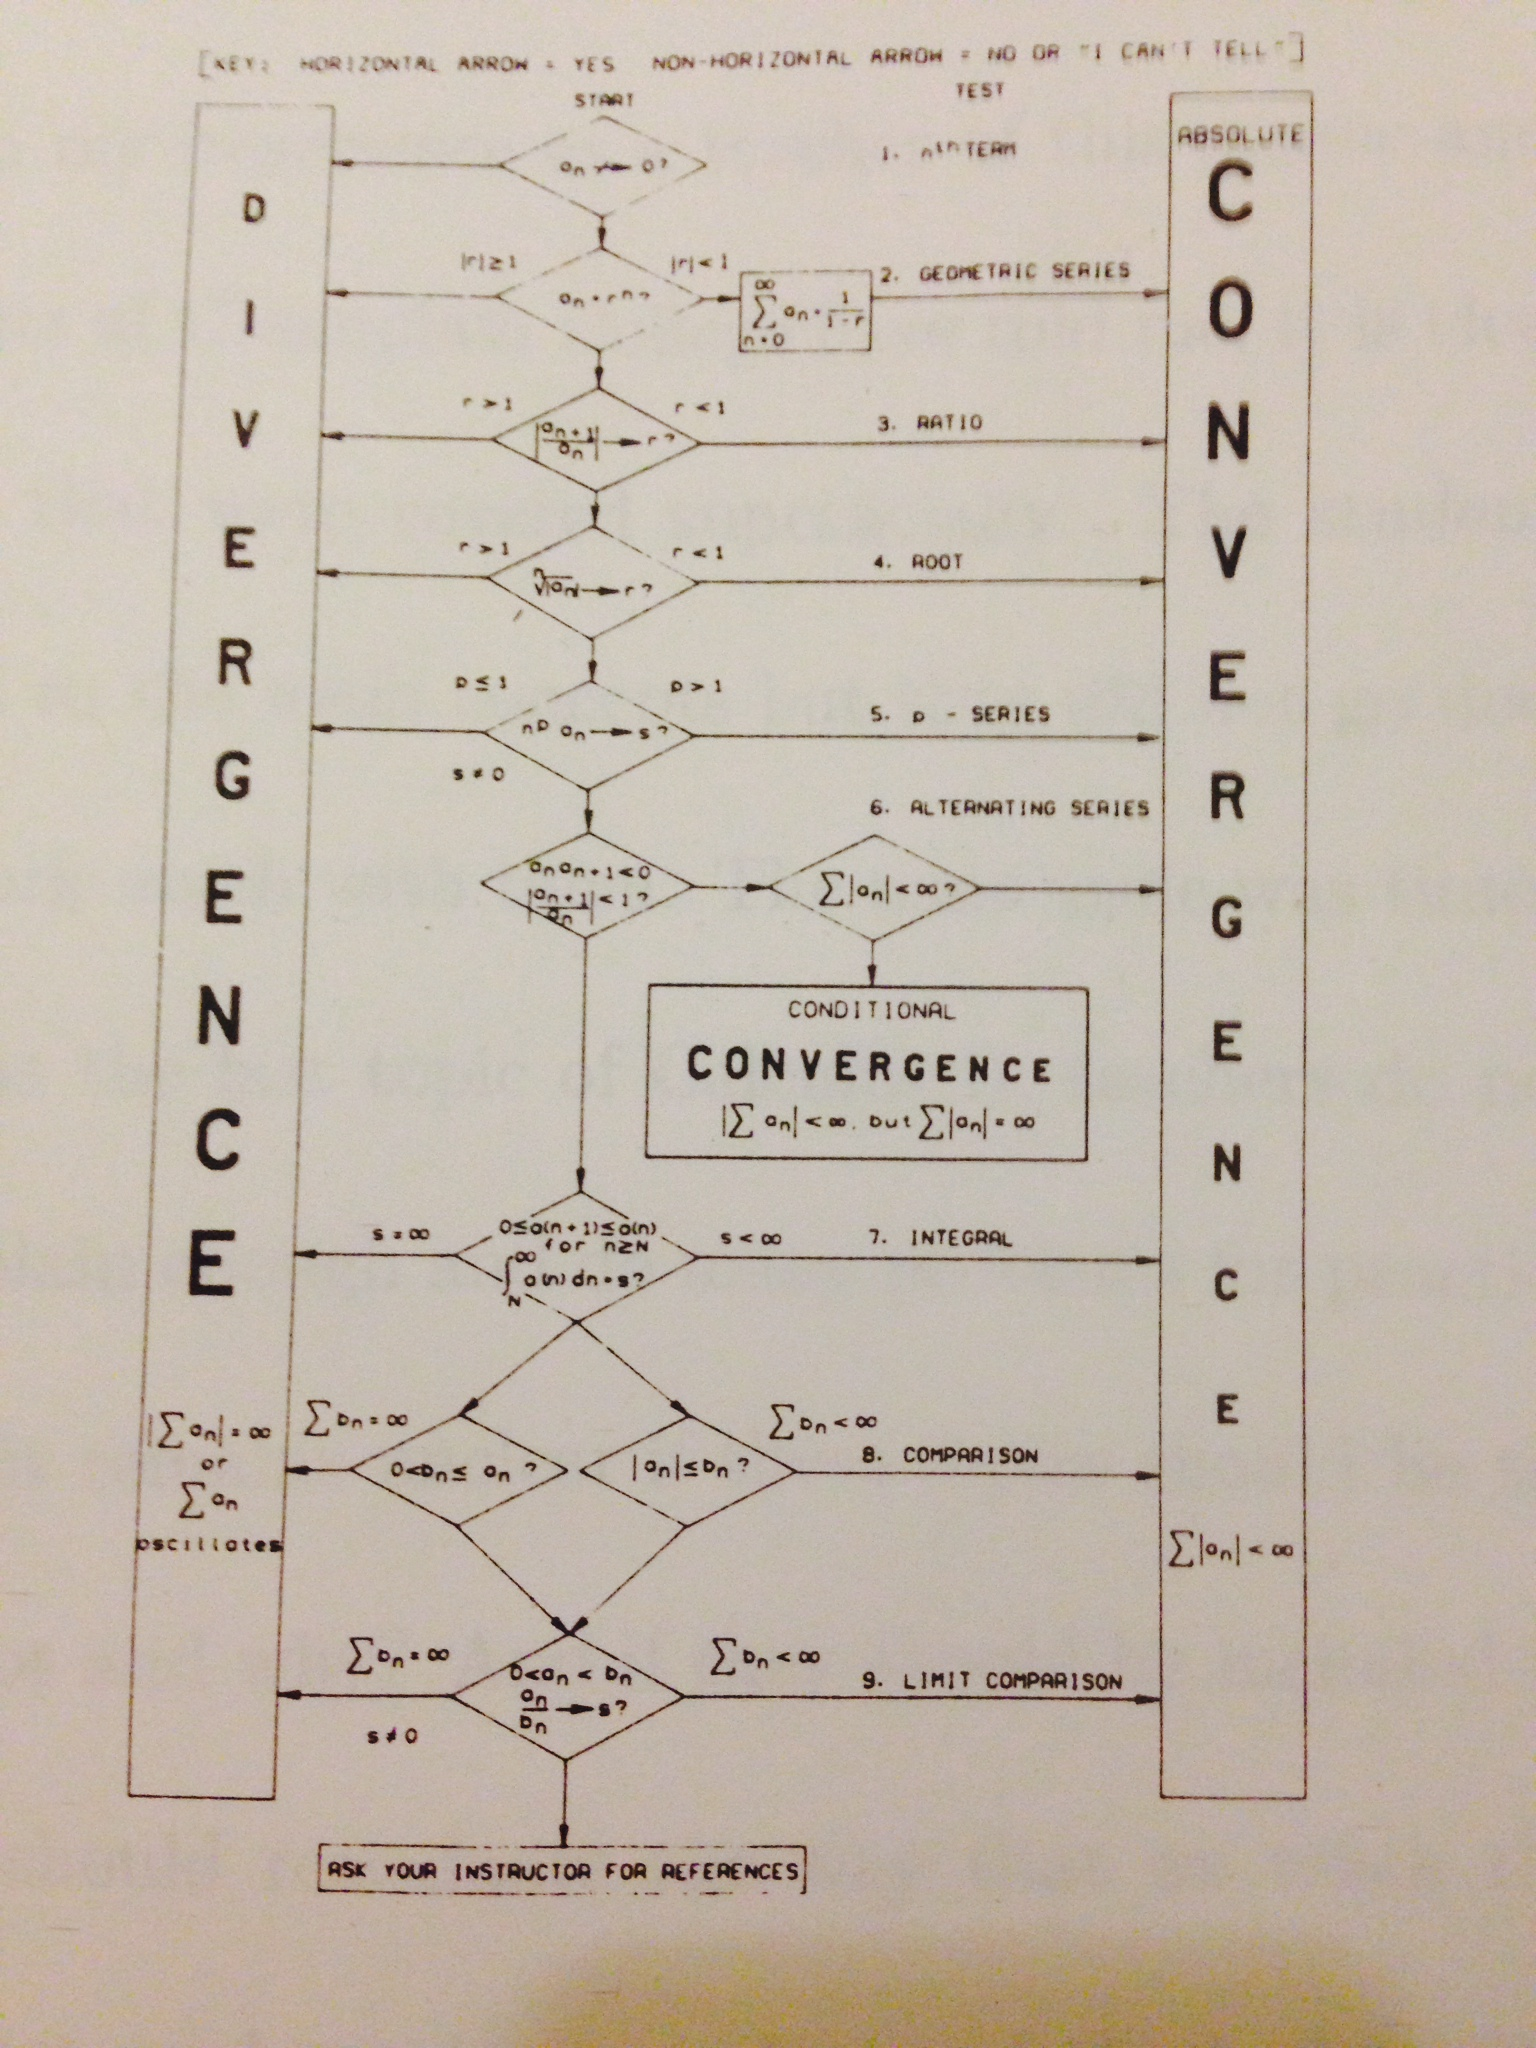 How to choose a test for convergence or divergence of